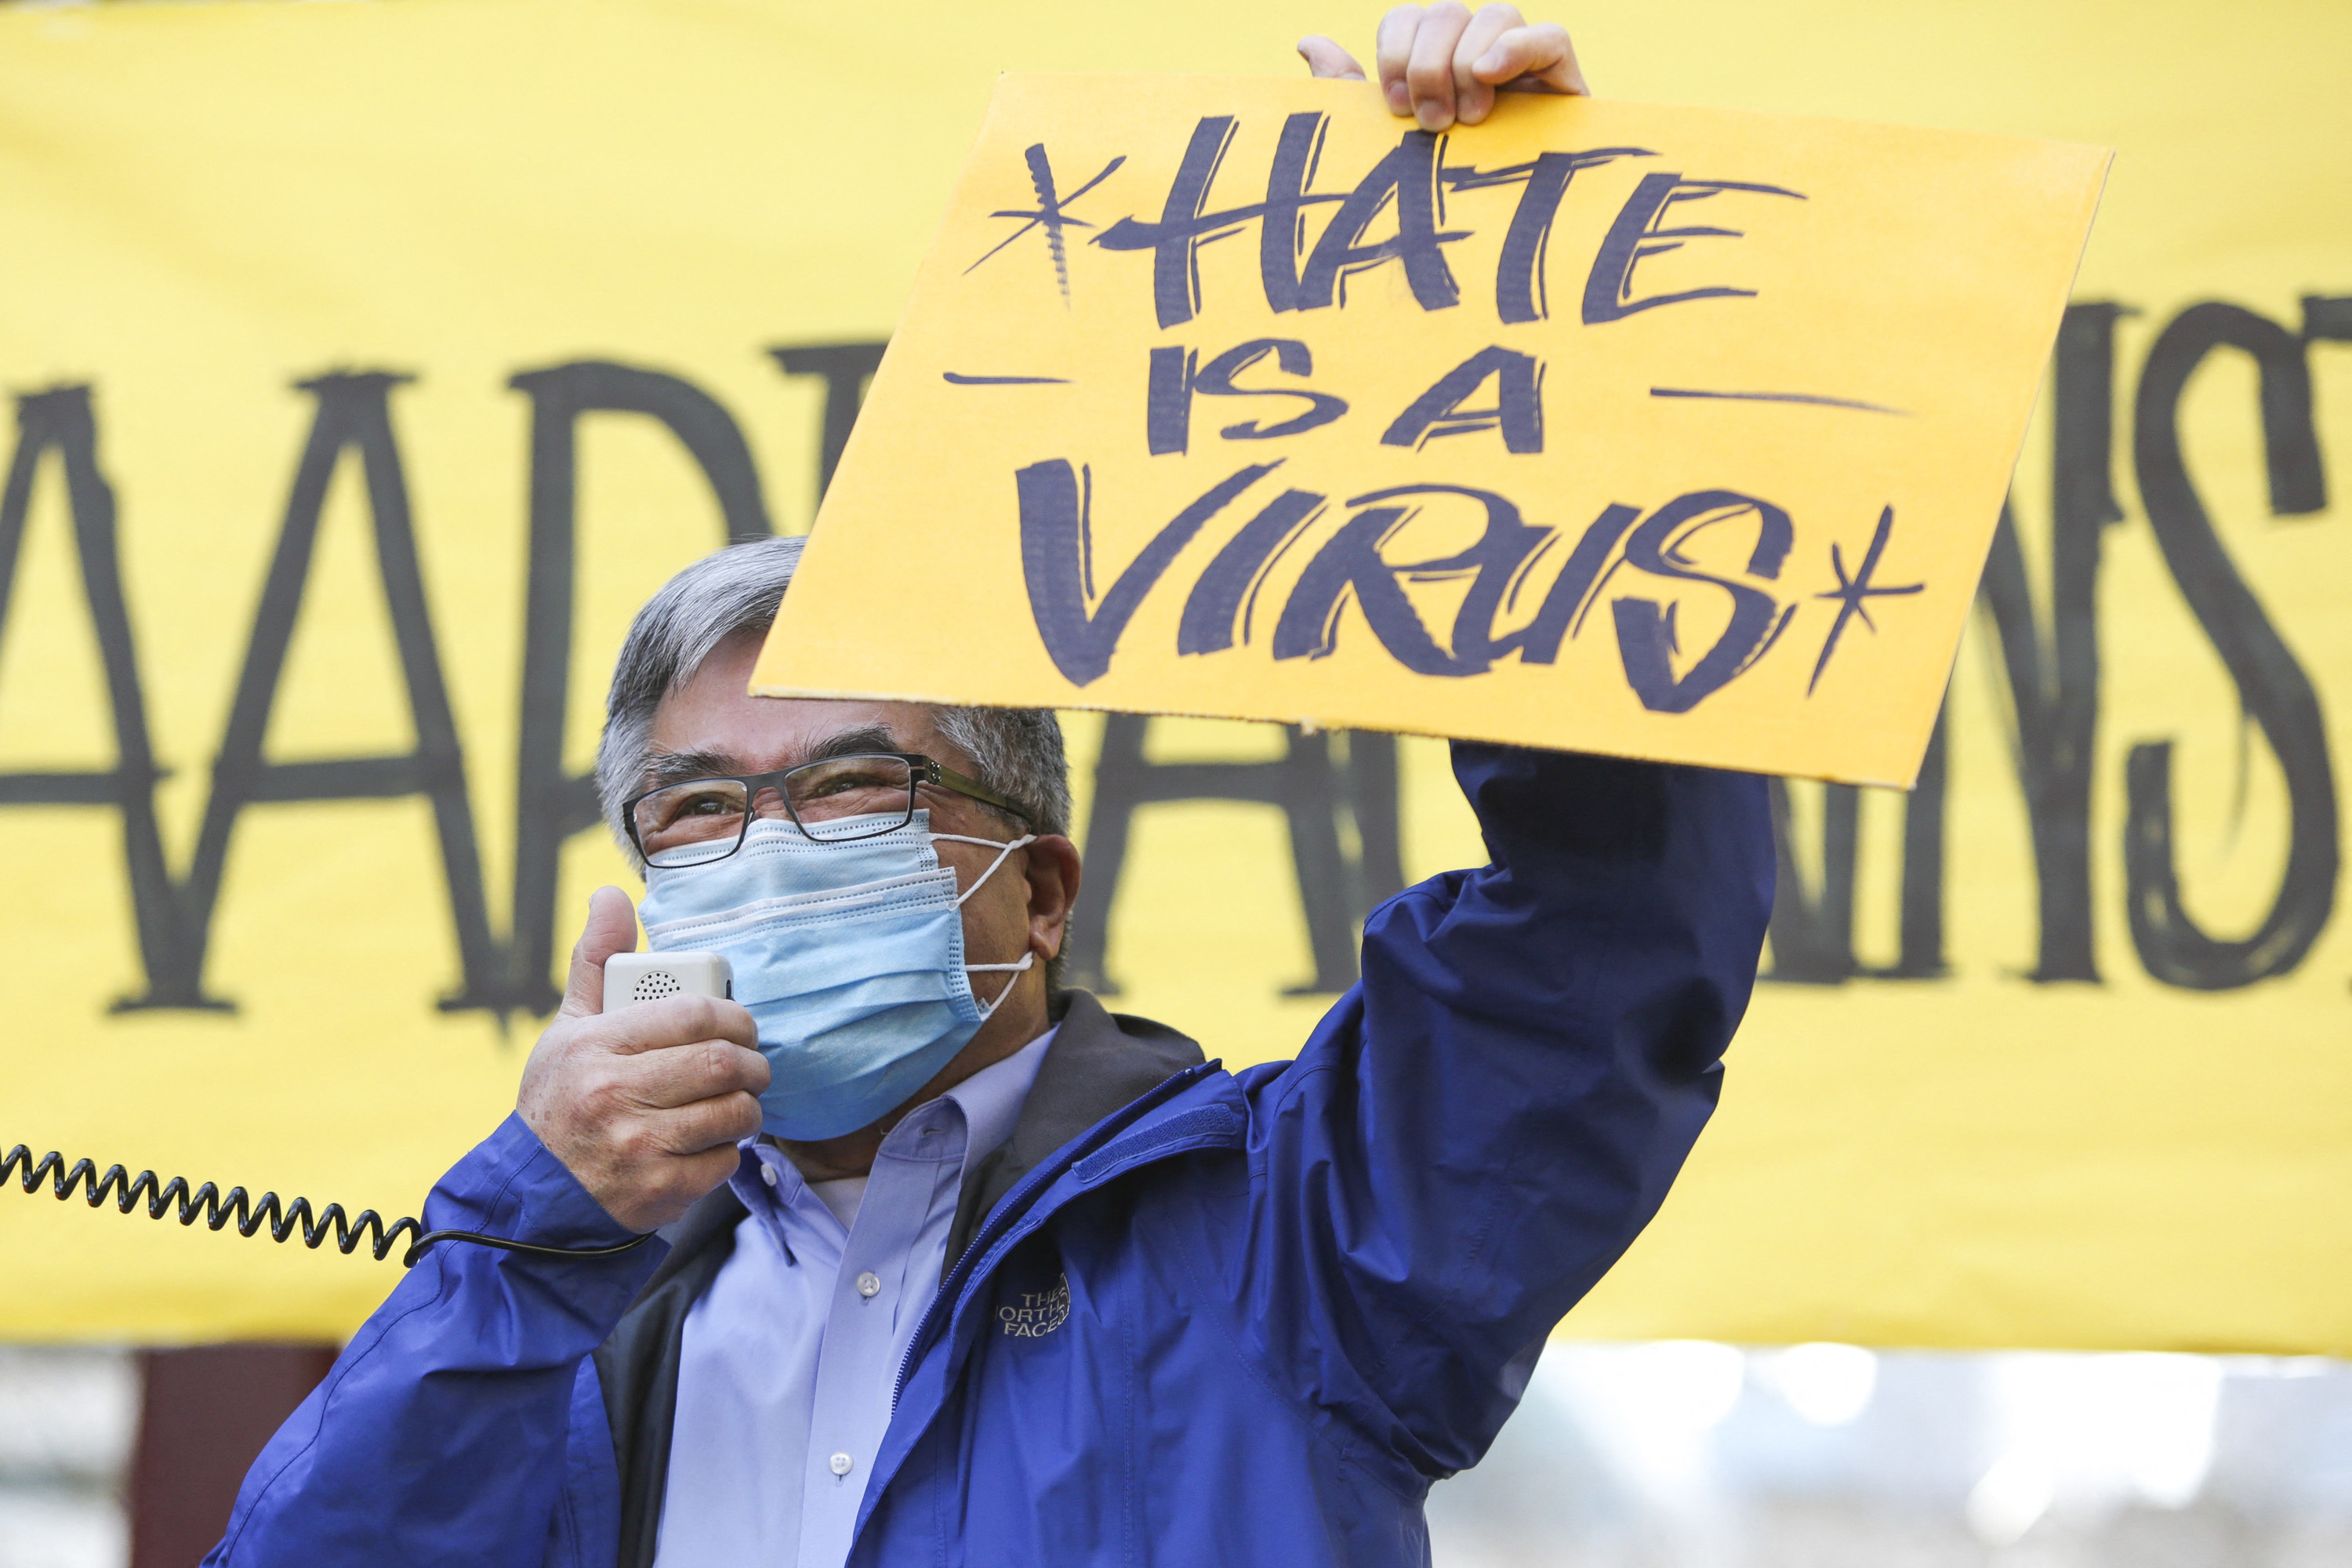 """The former governor of Washington, Asian American Gary Locke, speaks at a rally in Seattle in a medical mask while holding a sign that says, """"Hate is a virus"""""""